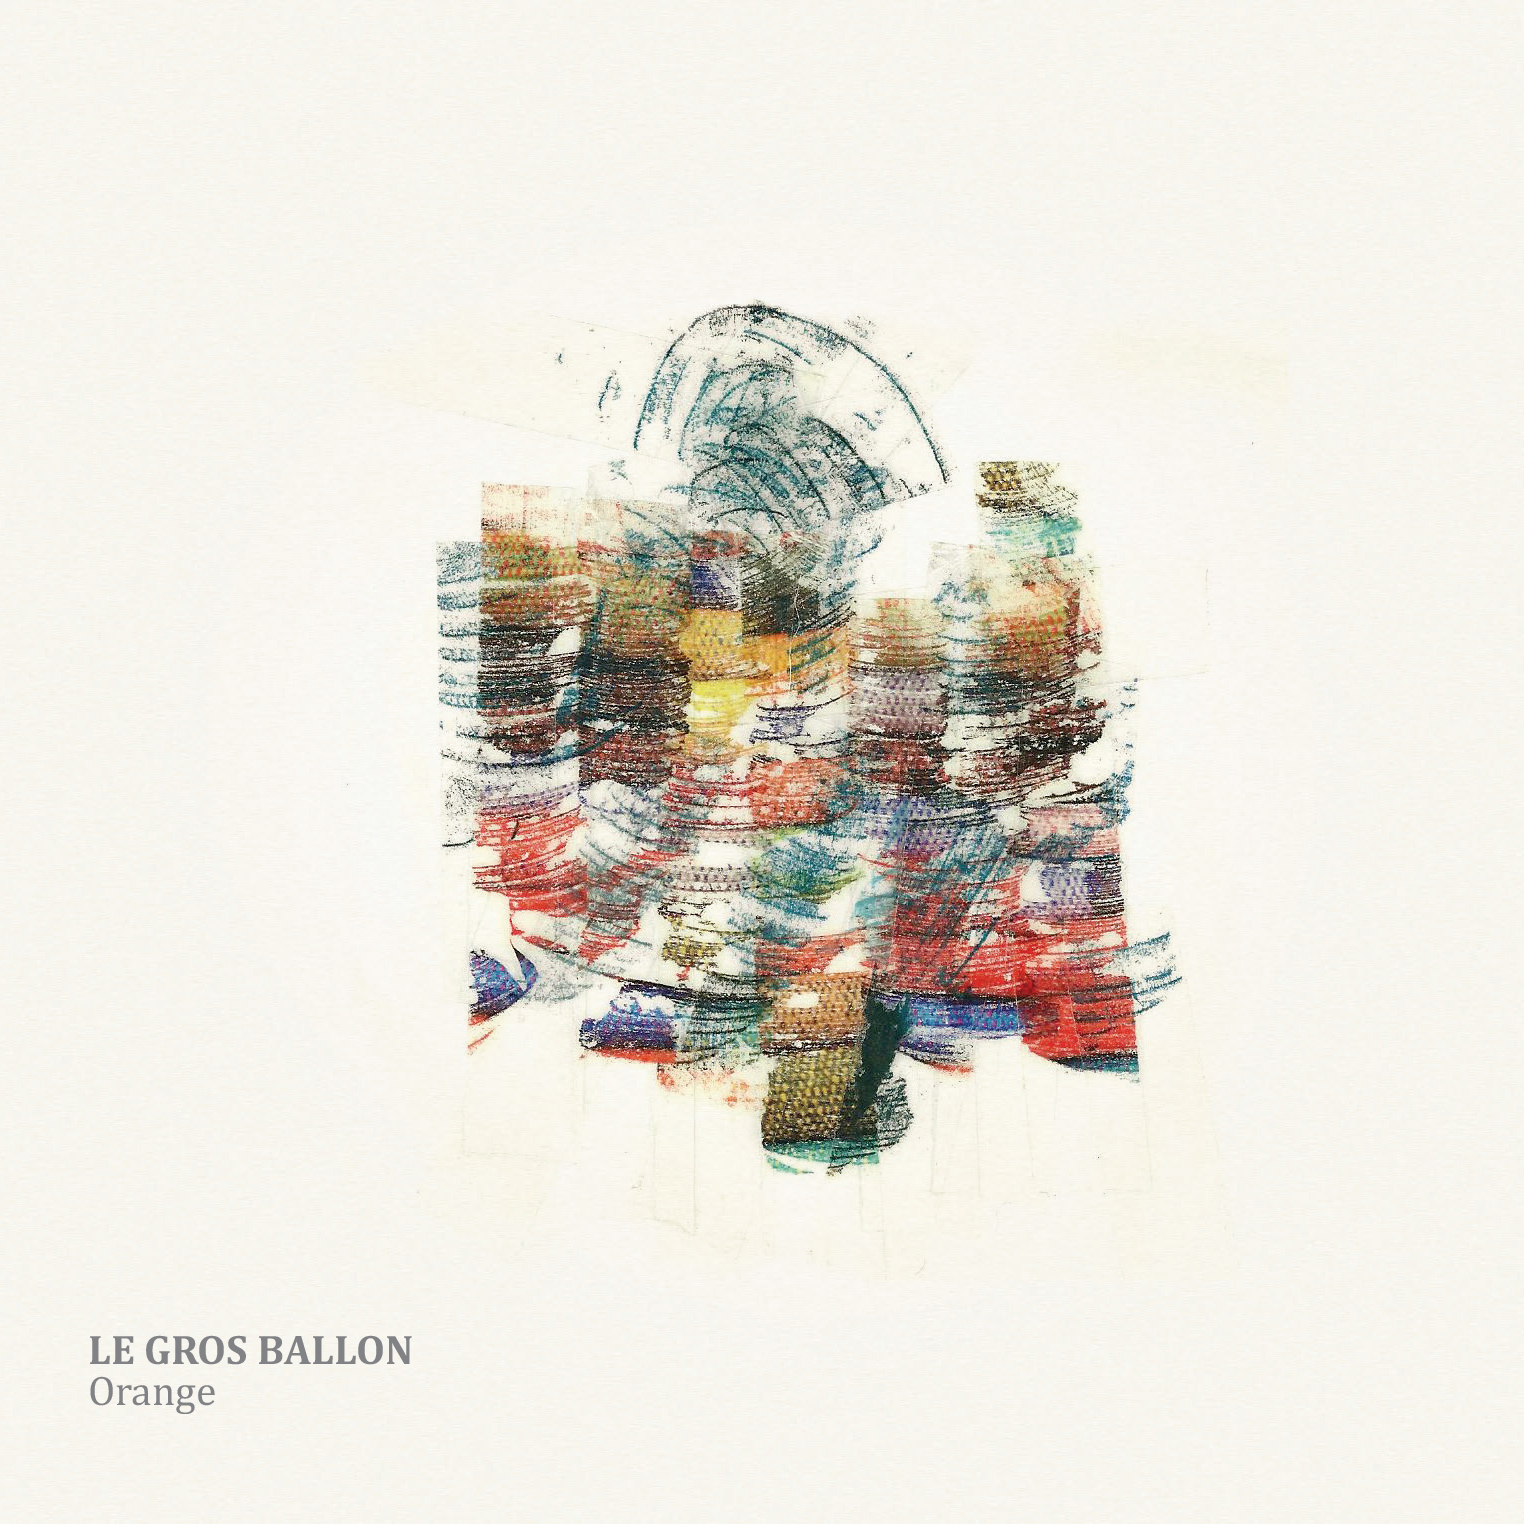 Le Gros Ballon - Orange